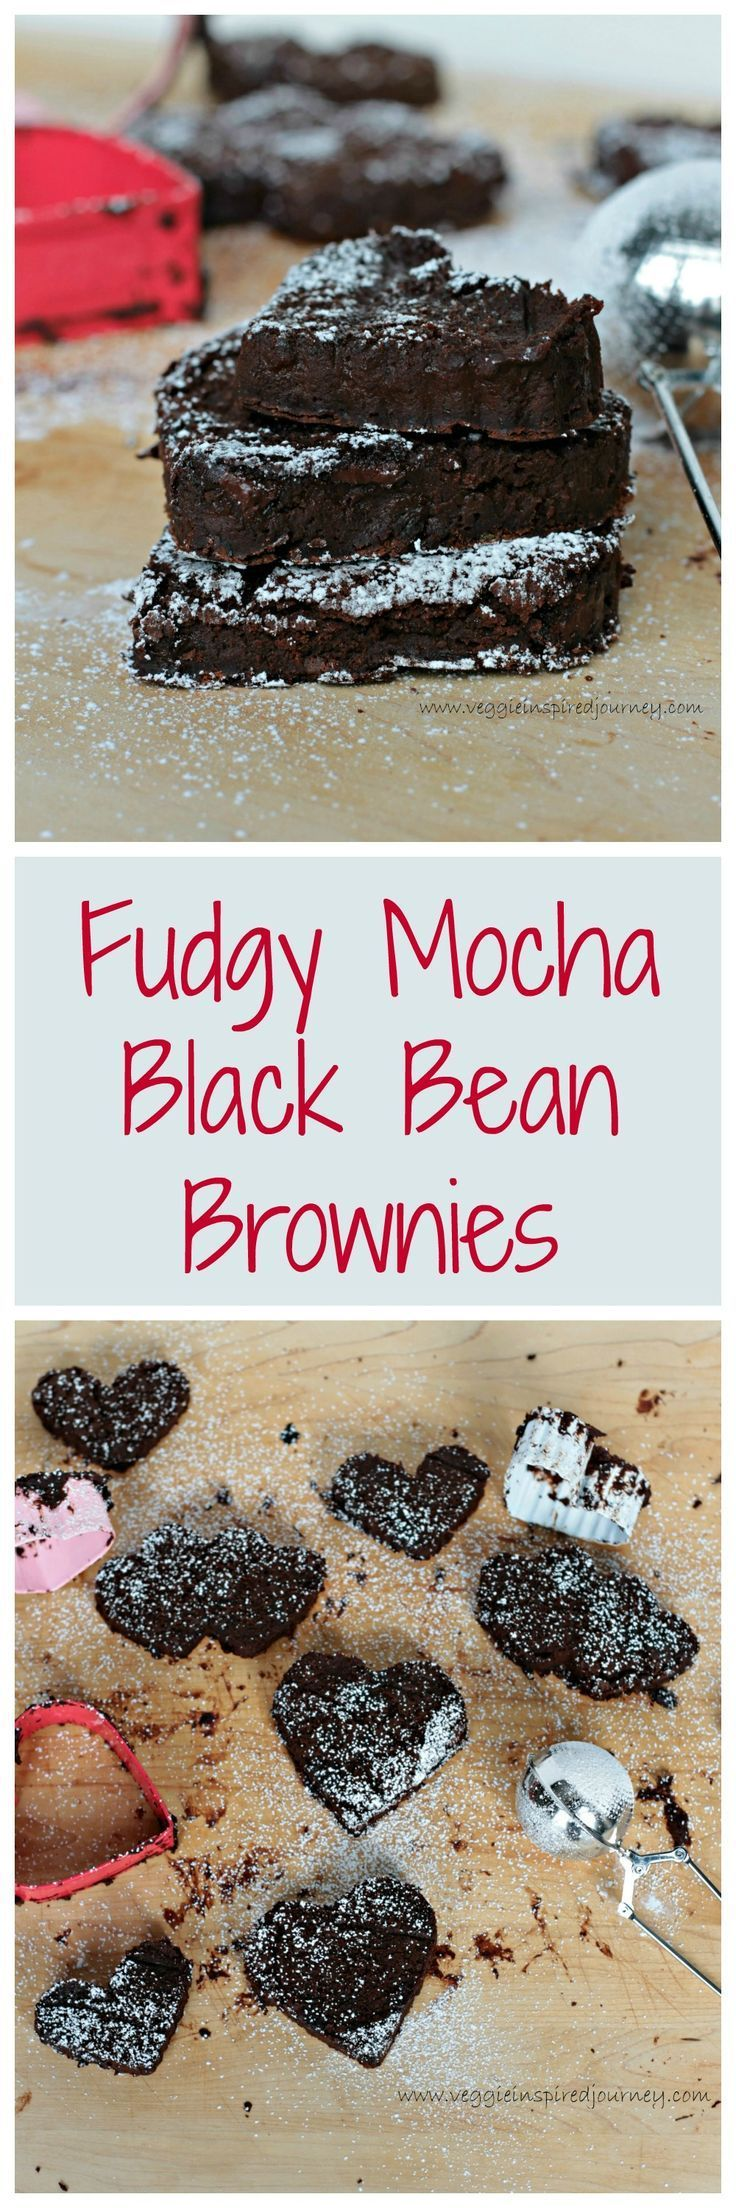 Fudgy Mocha Black Bean Brownie Hearts! So rich and chocolatey! You won't taste the black beans at all!